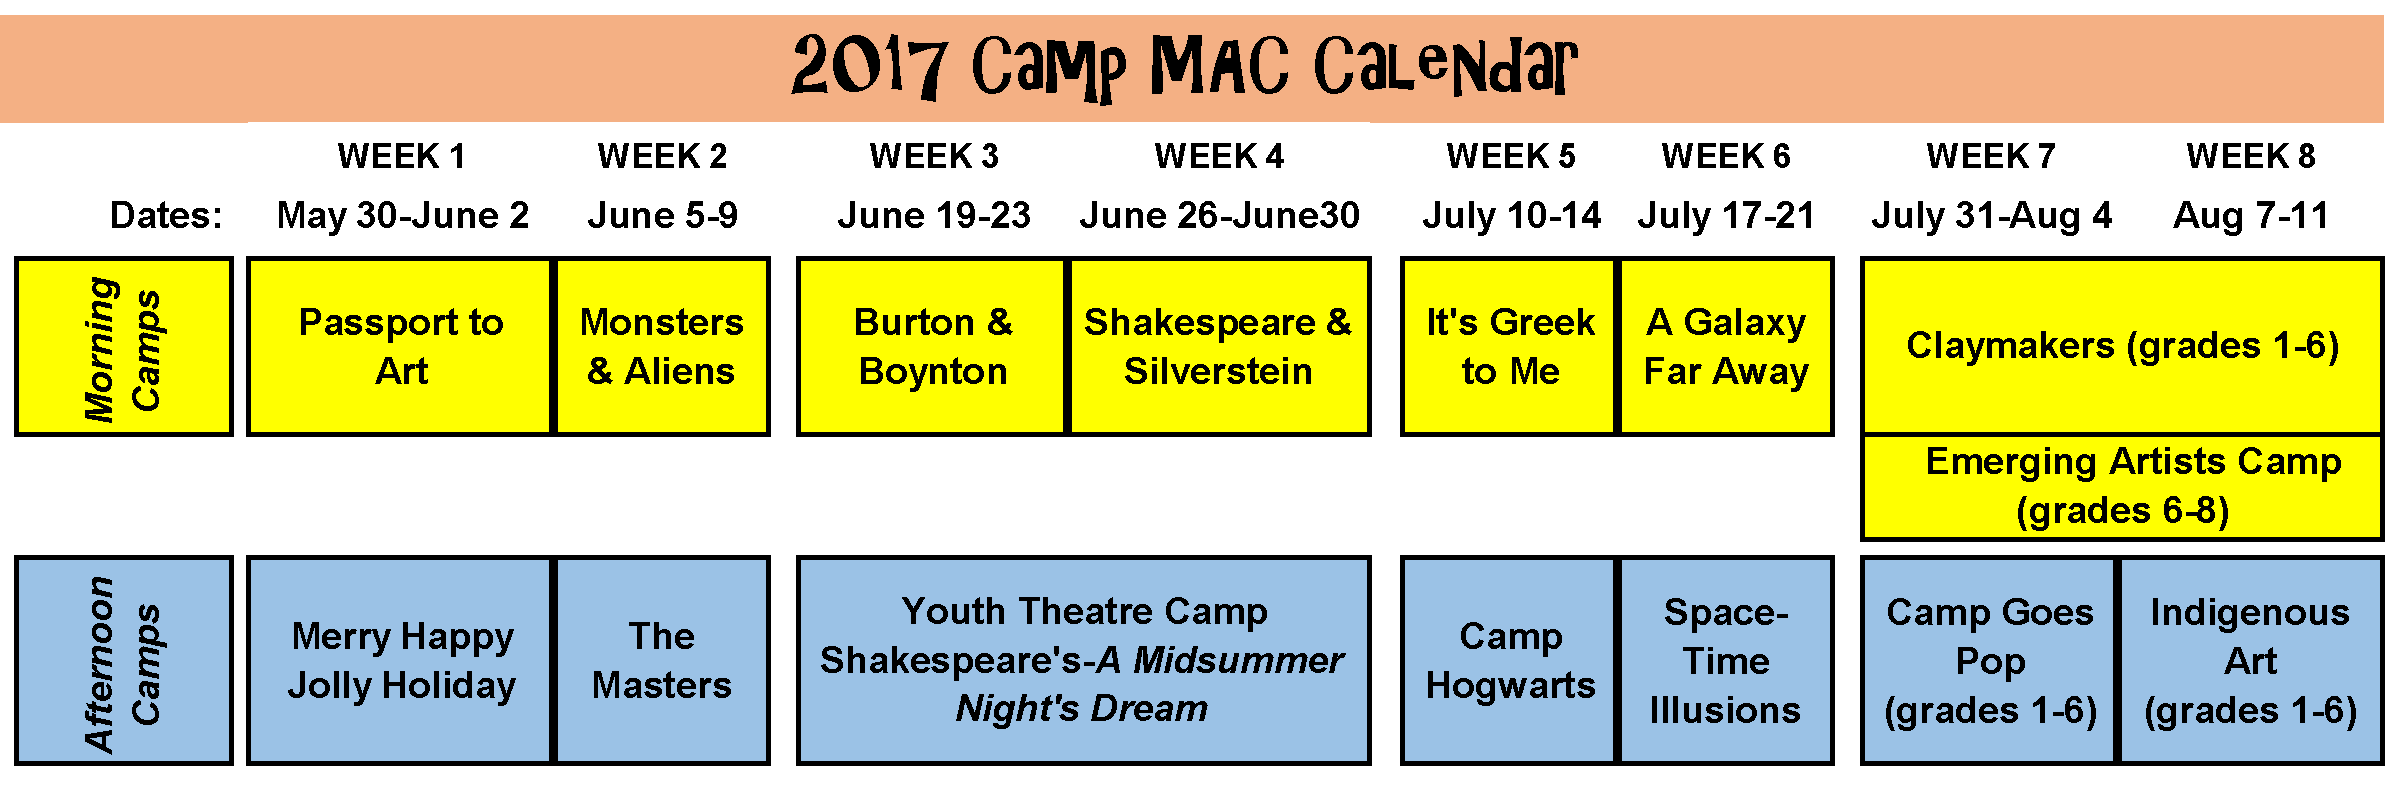 camp MAC 2017 schedule